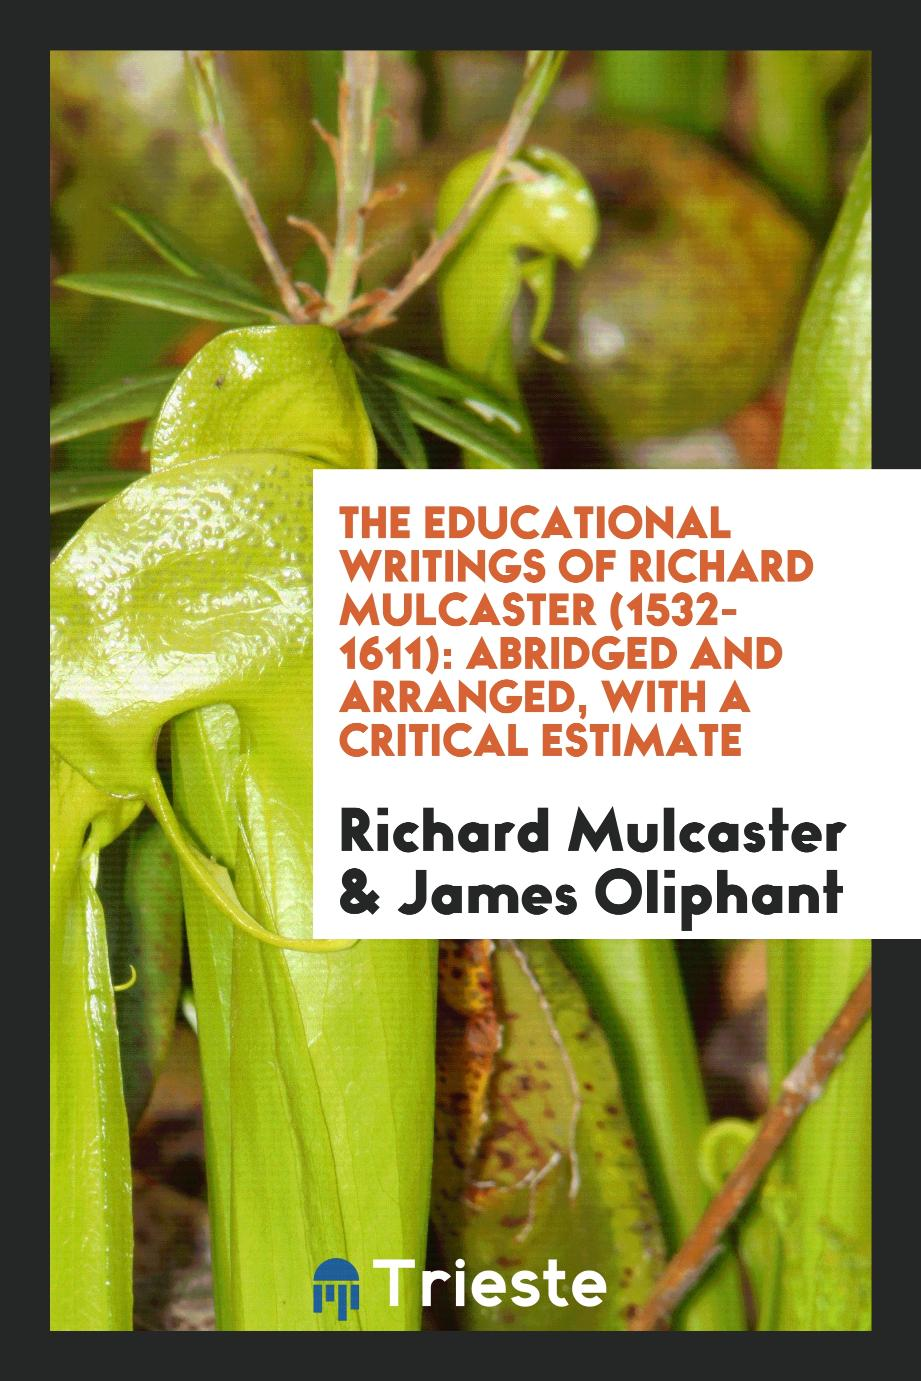 The Educational Writings of Richard Mulcaster (1532-1611): Abridged and Arranged, with a Critical Estimate